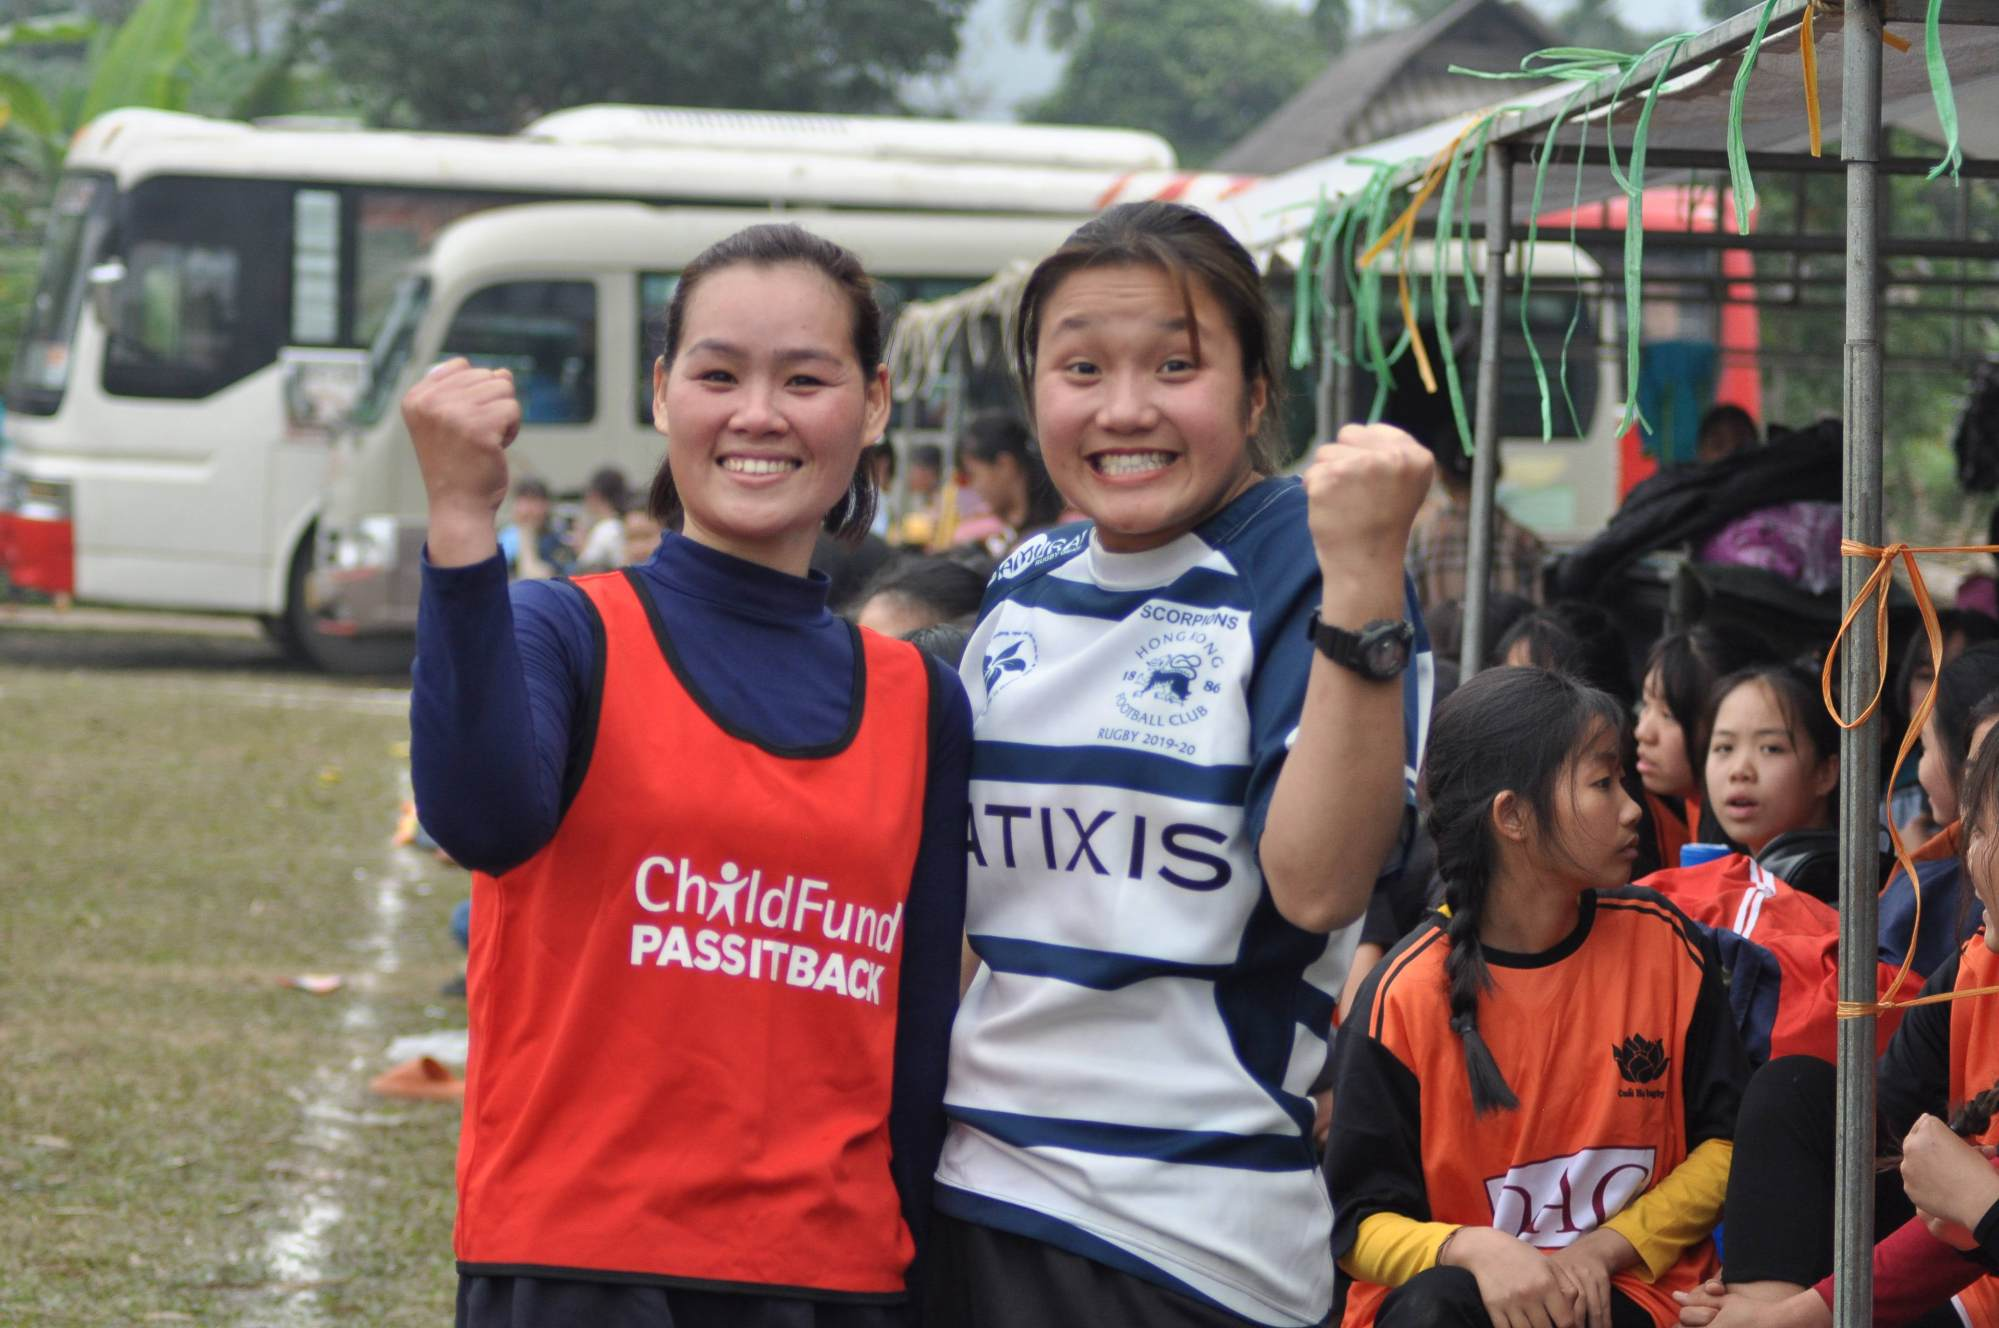 Young players wearing their Hong Kong Football Club rugby jerseys in Hoa Binh province. Photo: ChildFund Rugby